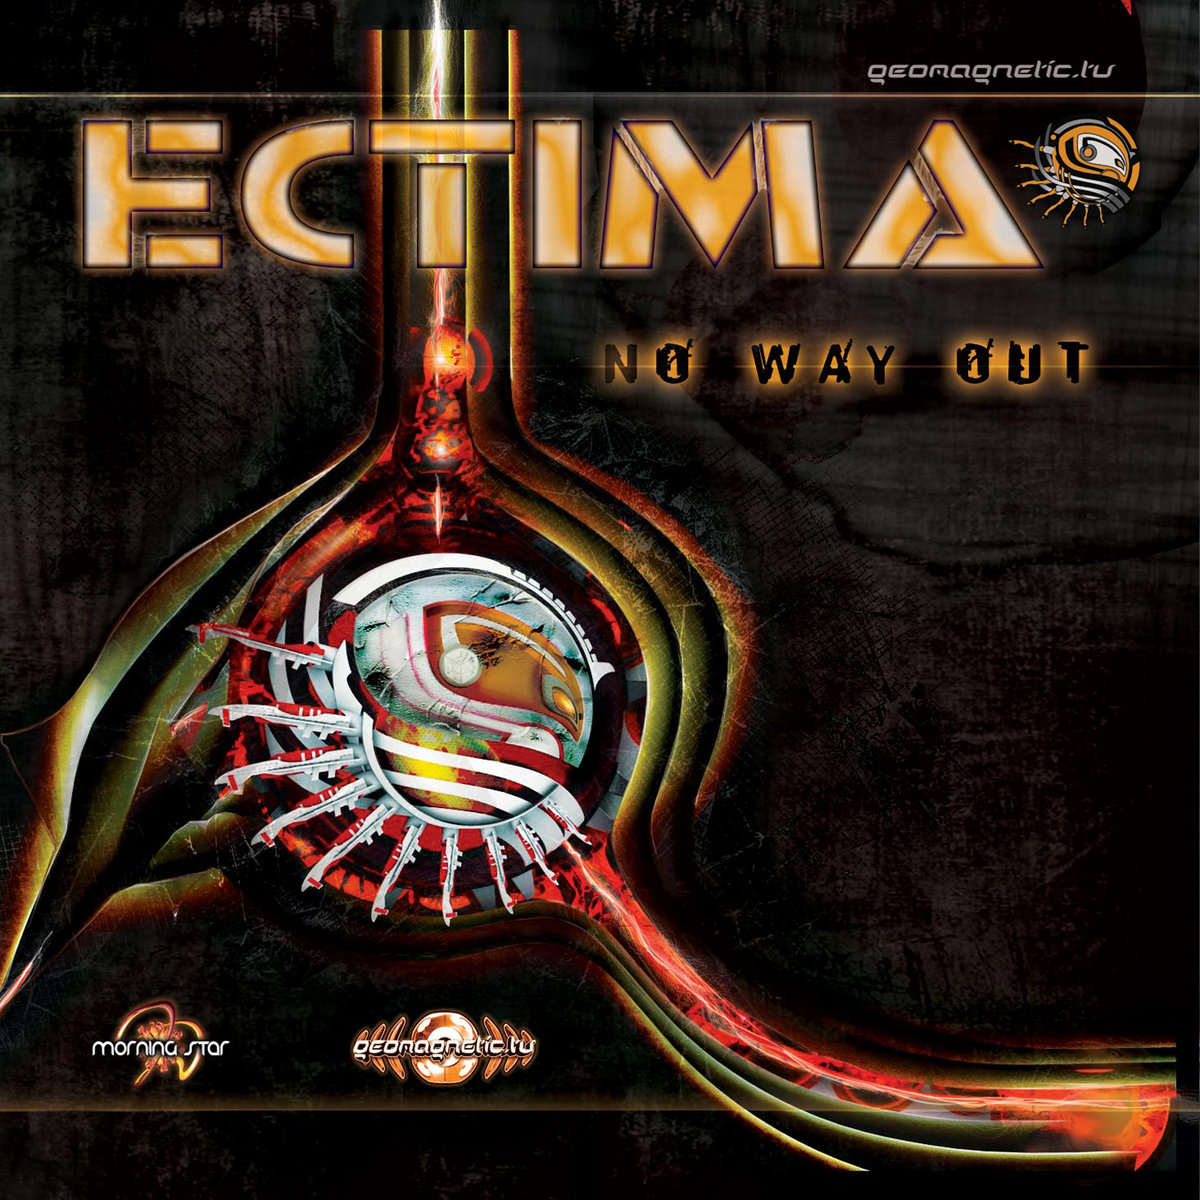 Ectima - Metal Isolation (Remix) @ 'No Way Out' album (electronic, goa)